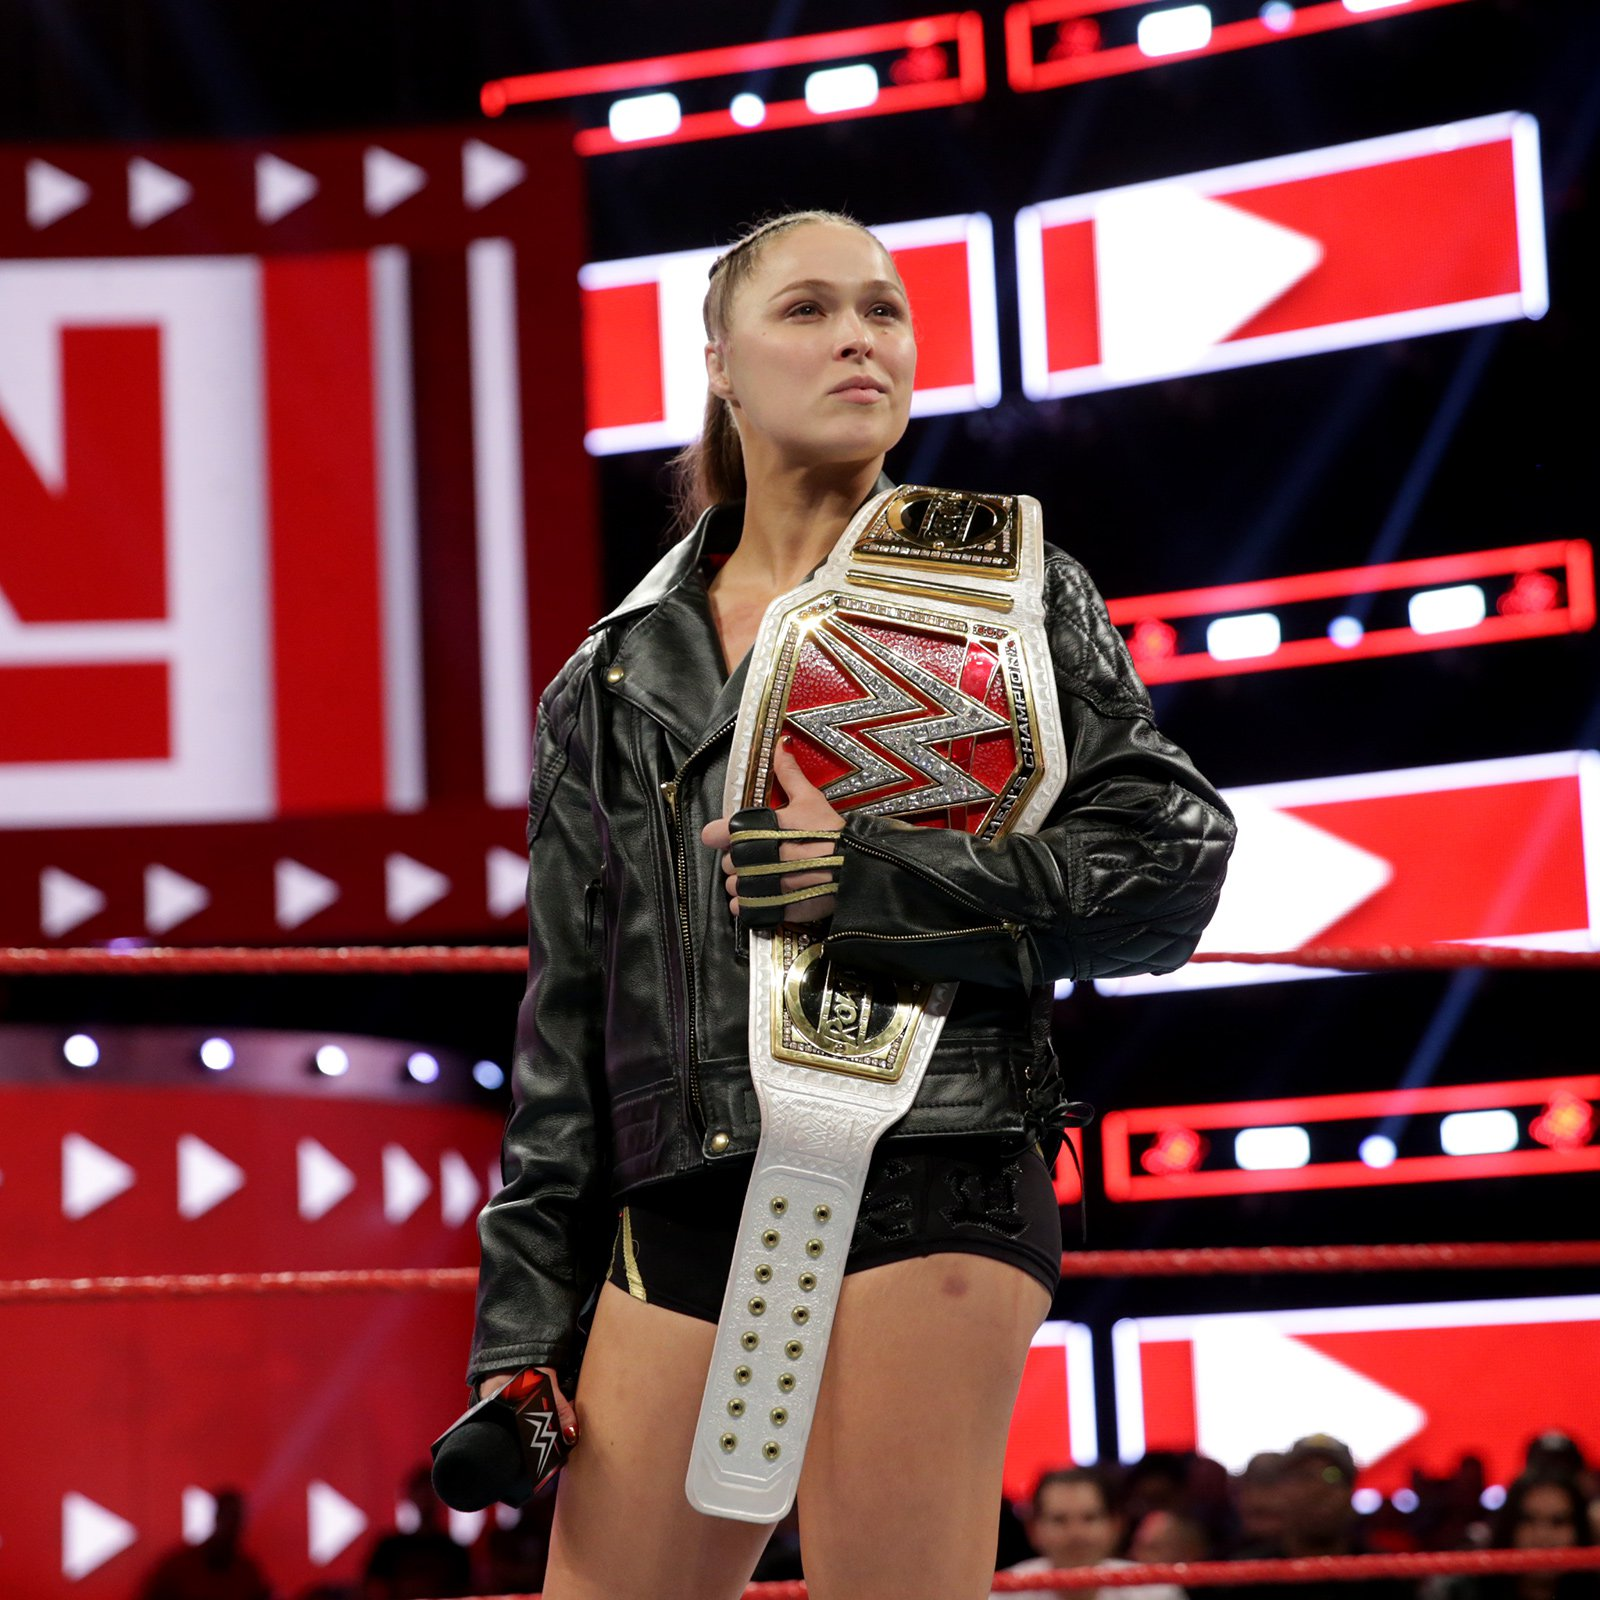 Am I The Only One? Rousey No-sells Beating; Ambrose